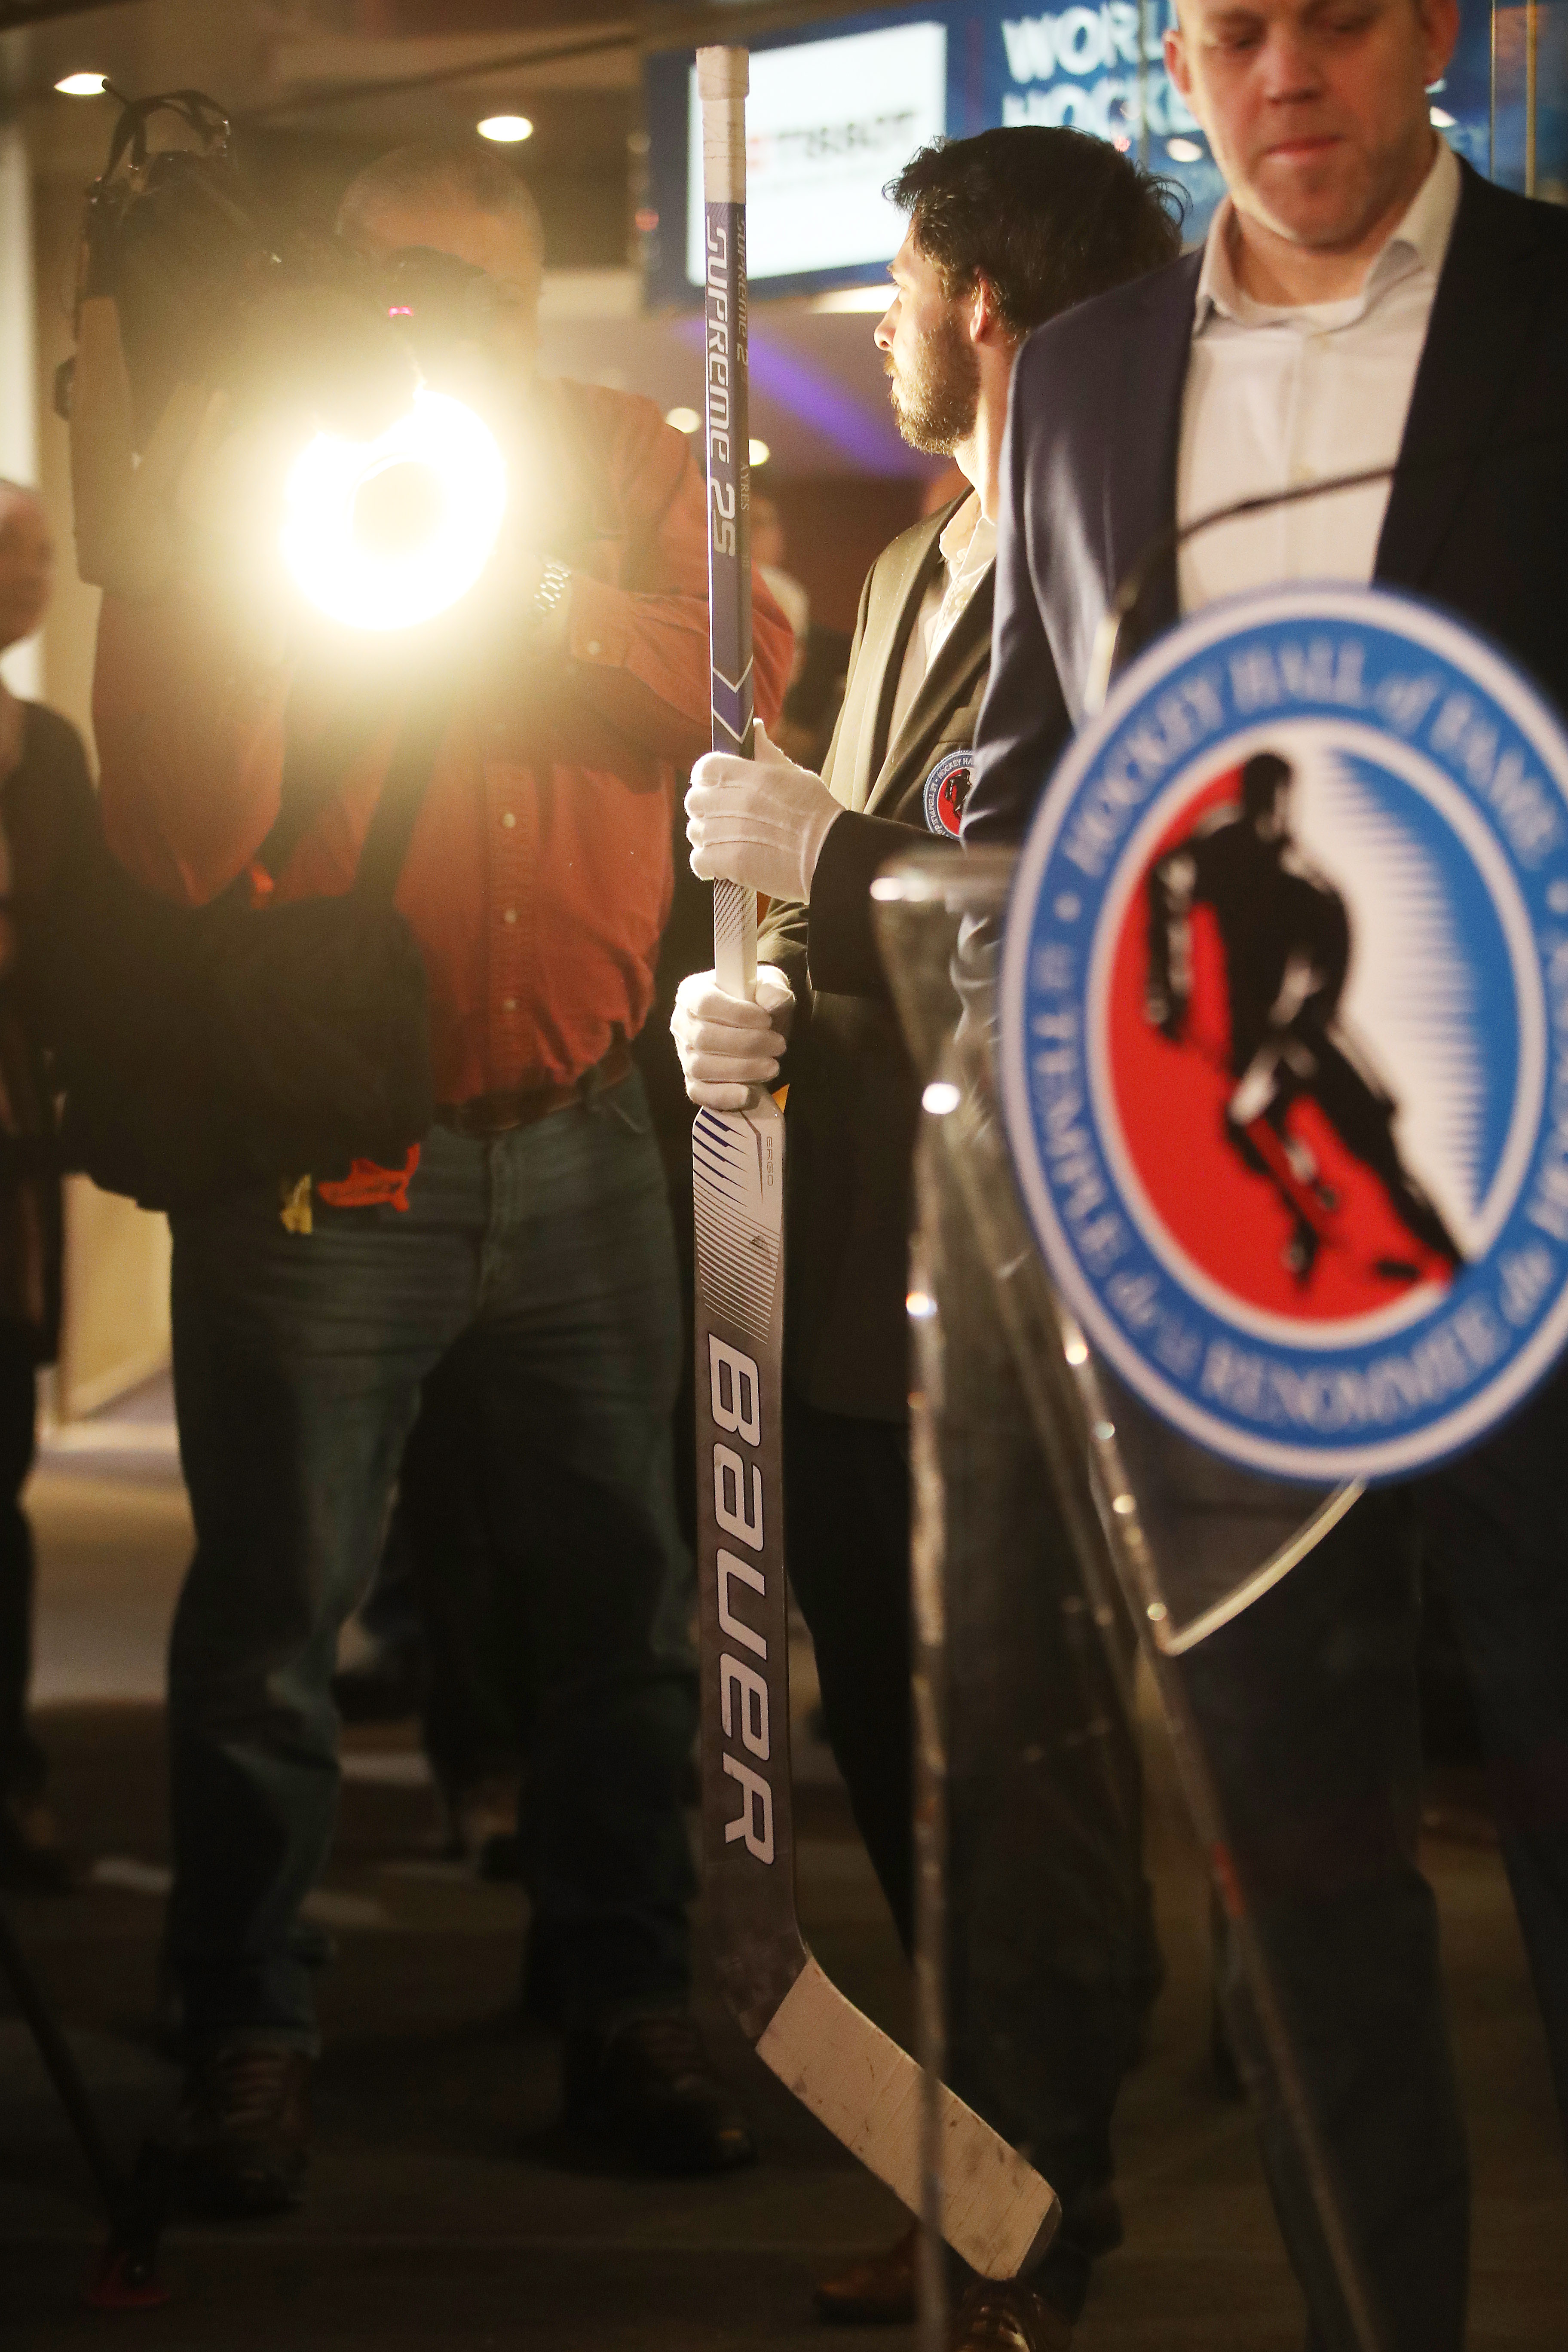 Hockey Hall of Fame added to their collection the stick used last week by David Ayres, the Zamboni driver and the Operations Manager at Mattamy Athletic Centre who became a hockey and internet sensation when he became the first emergency backup goalie to w